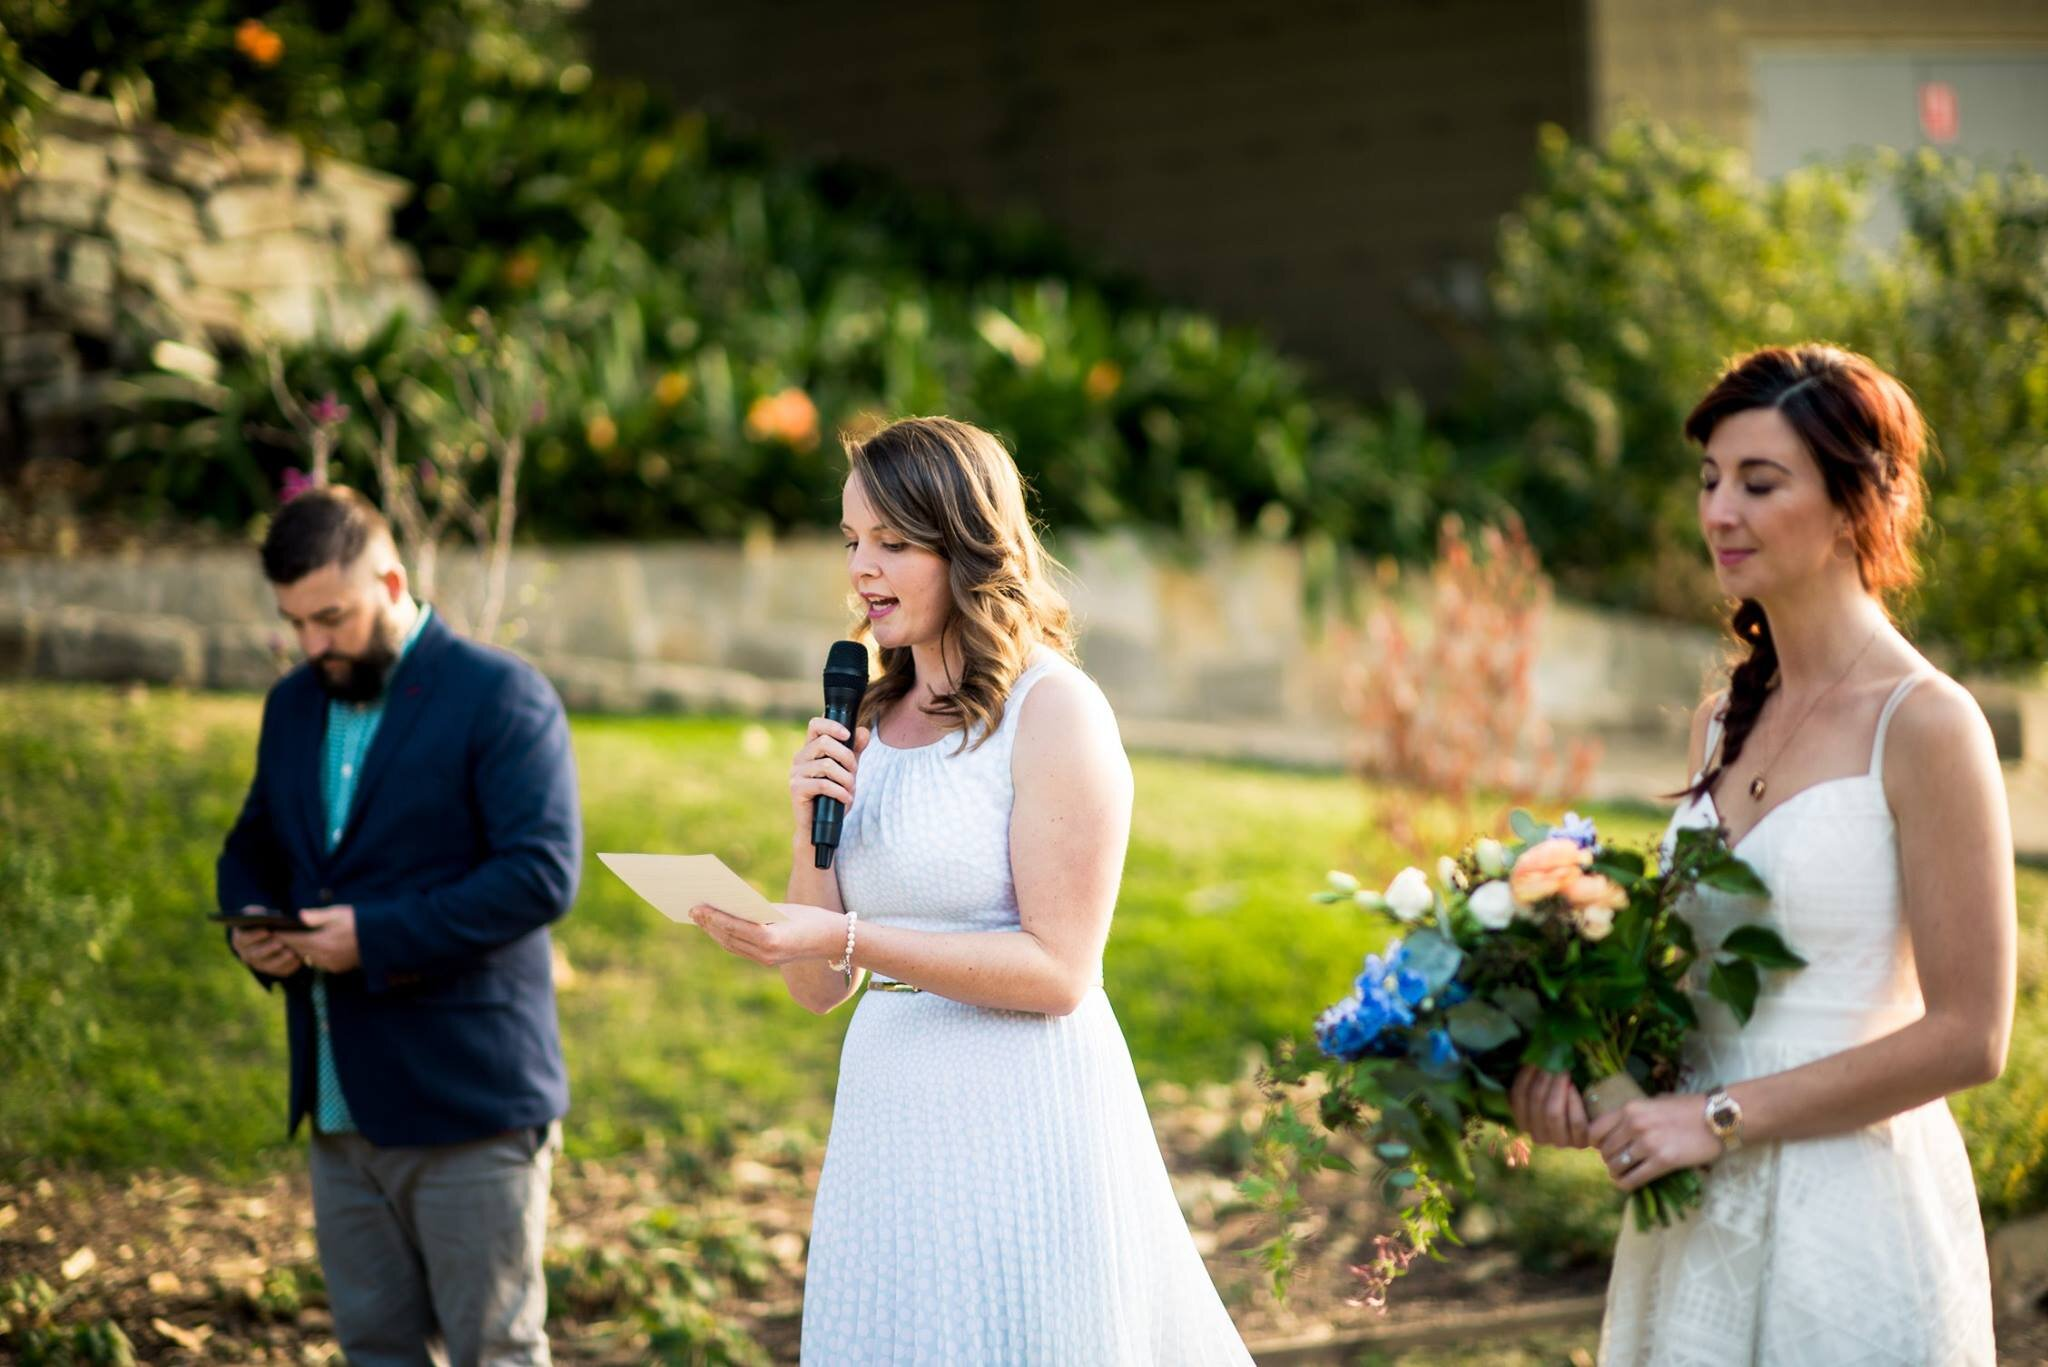 Sharon giving a speech at her brother's wedding